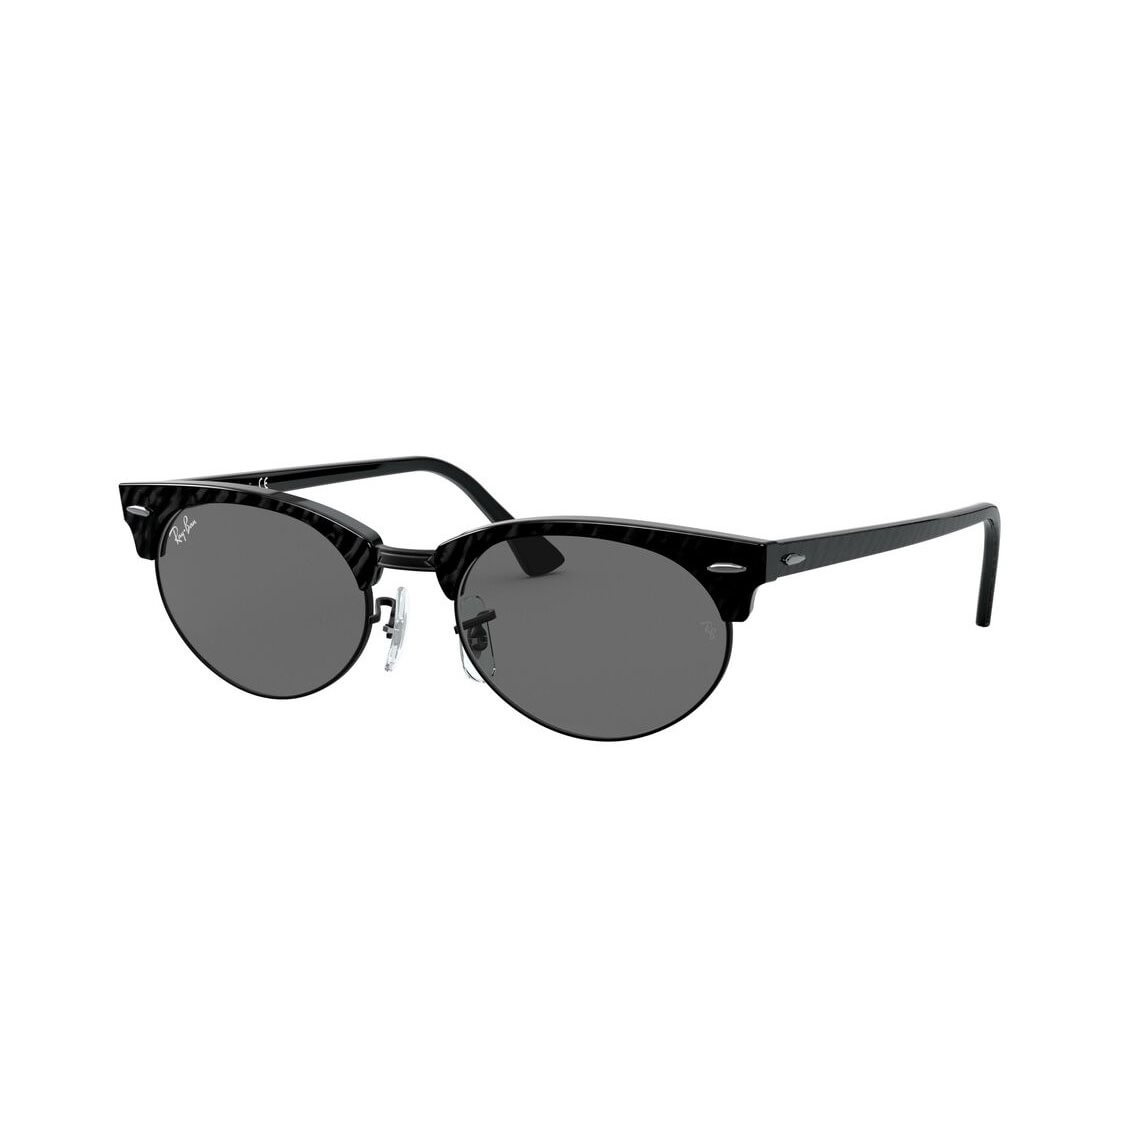 Ray-Ban Clubmaster Oval RB3946 1305B1 52